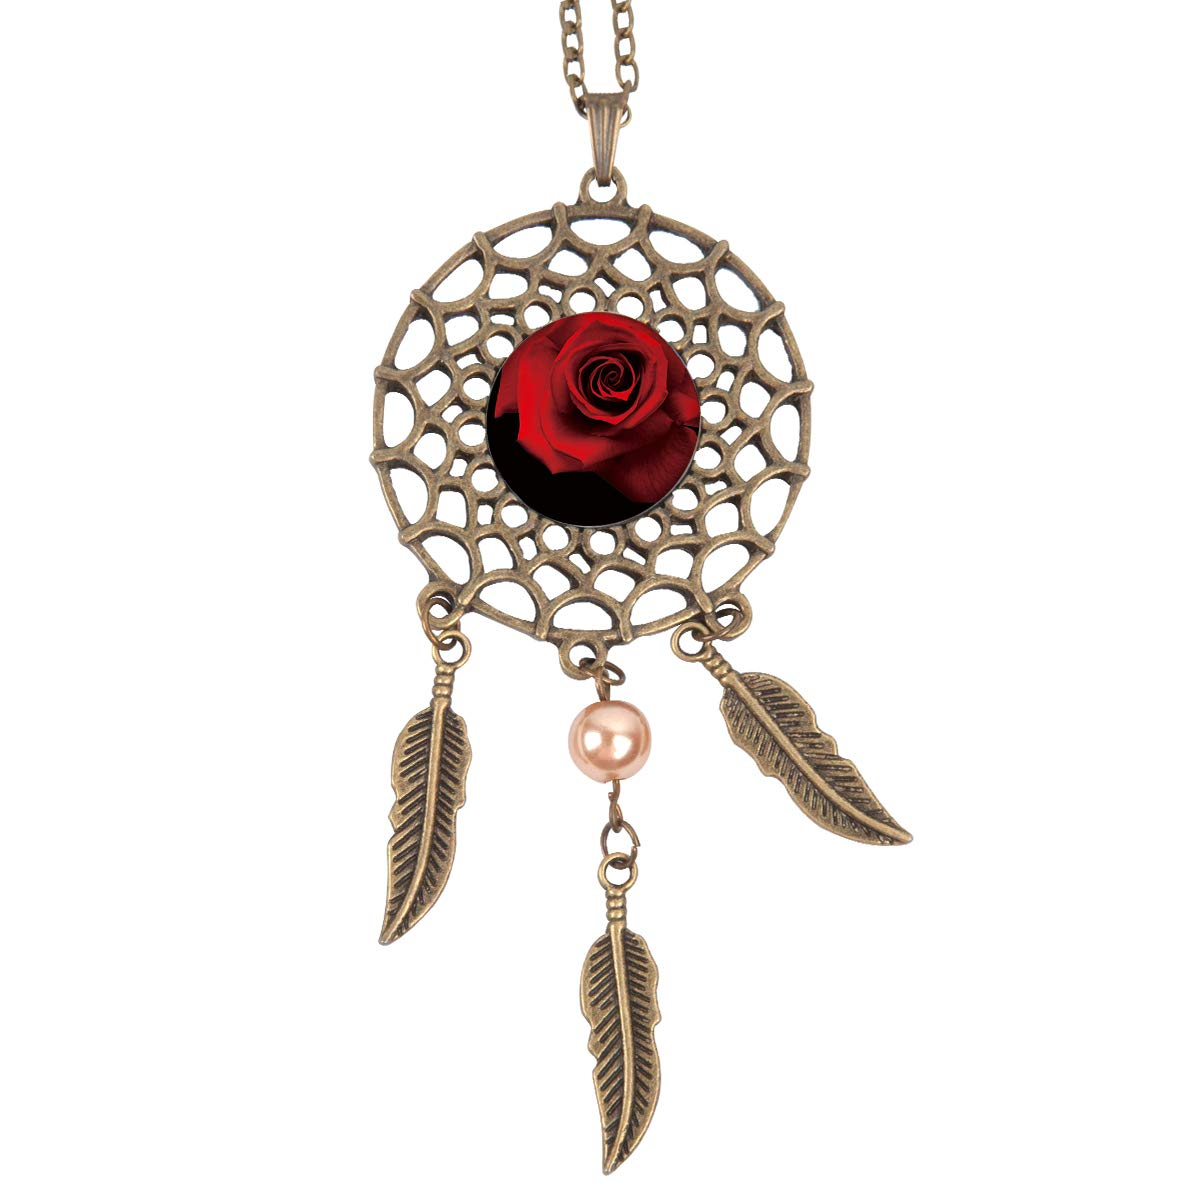 Queen Area Dream Catcher Necklace Rose Pendant Dangling Feather Tassel Bead Charm Chain Jewelry for Women